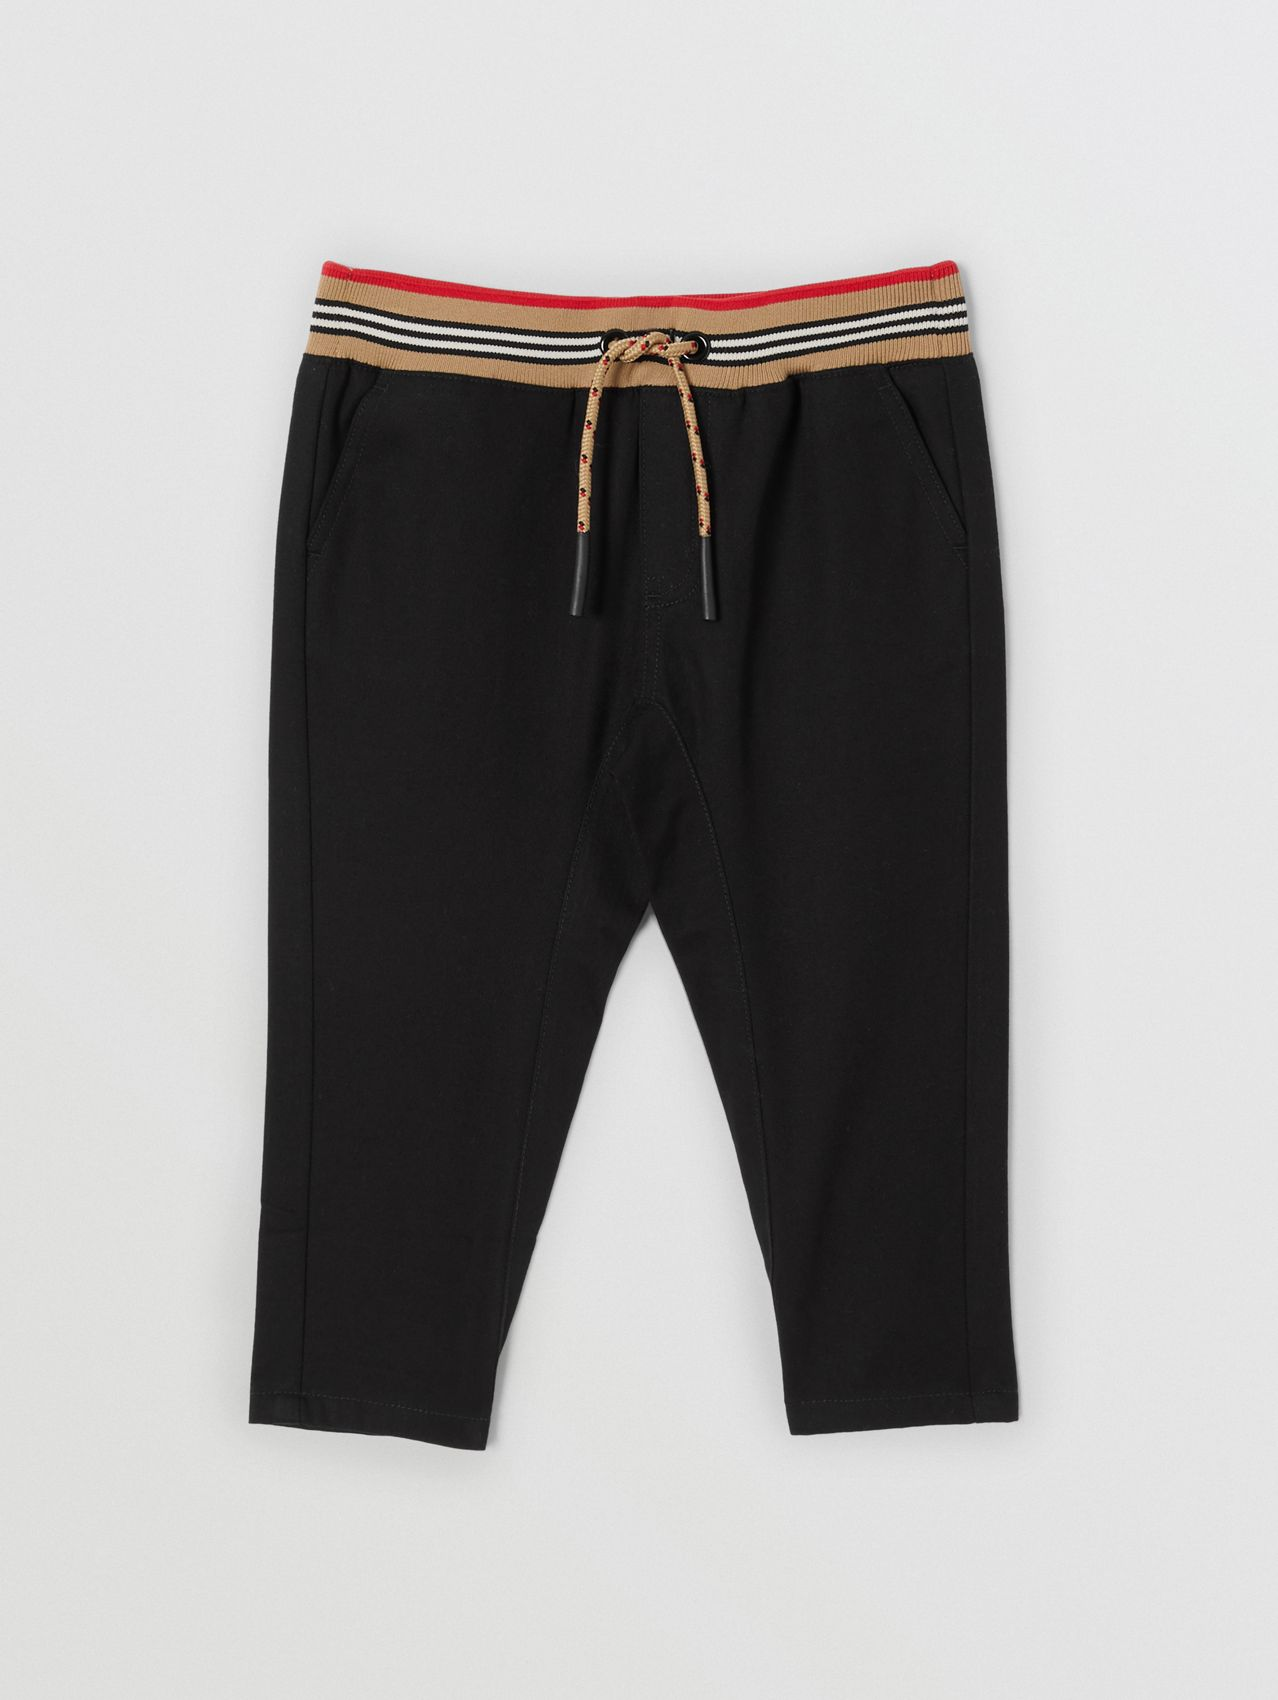 Pantaloni in twill di cotone con coulisse e iconico motivo a righe (Nero)